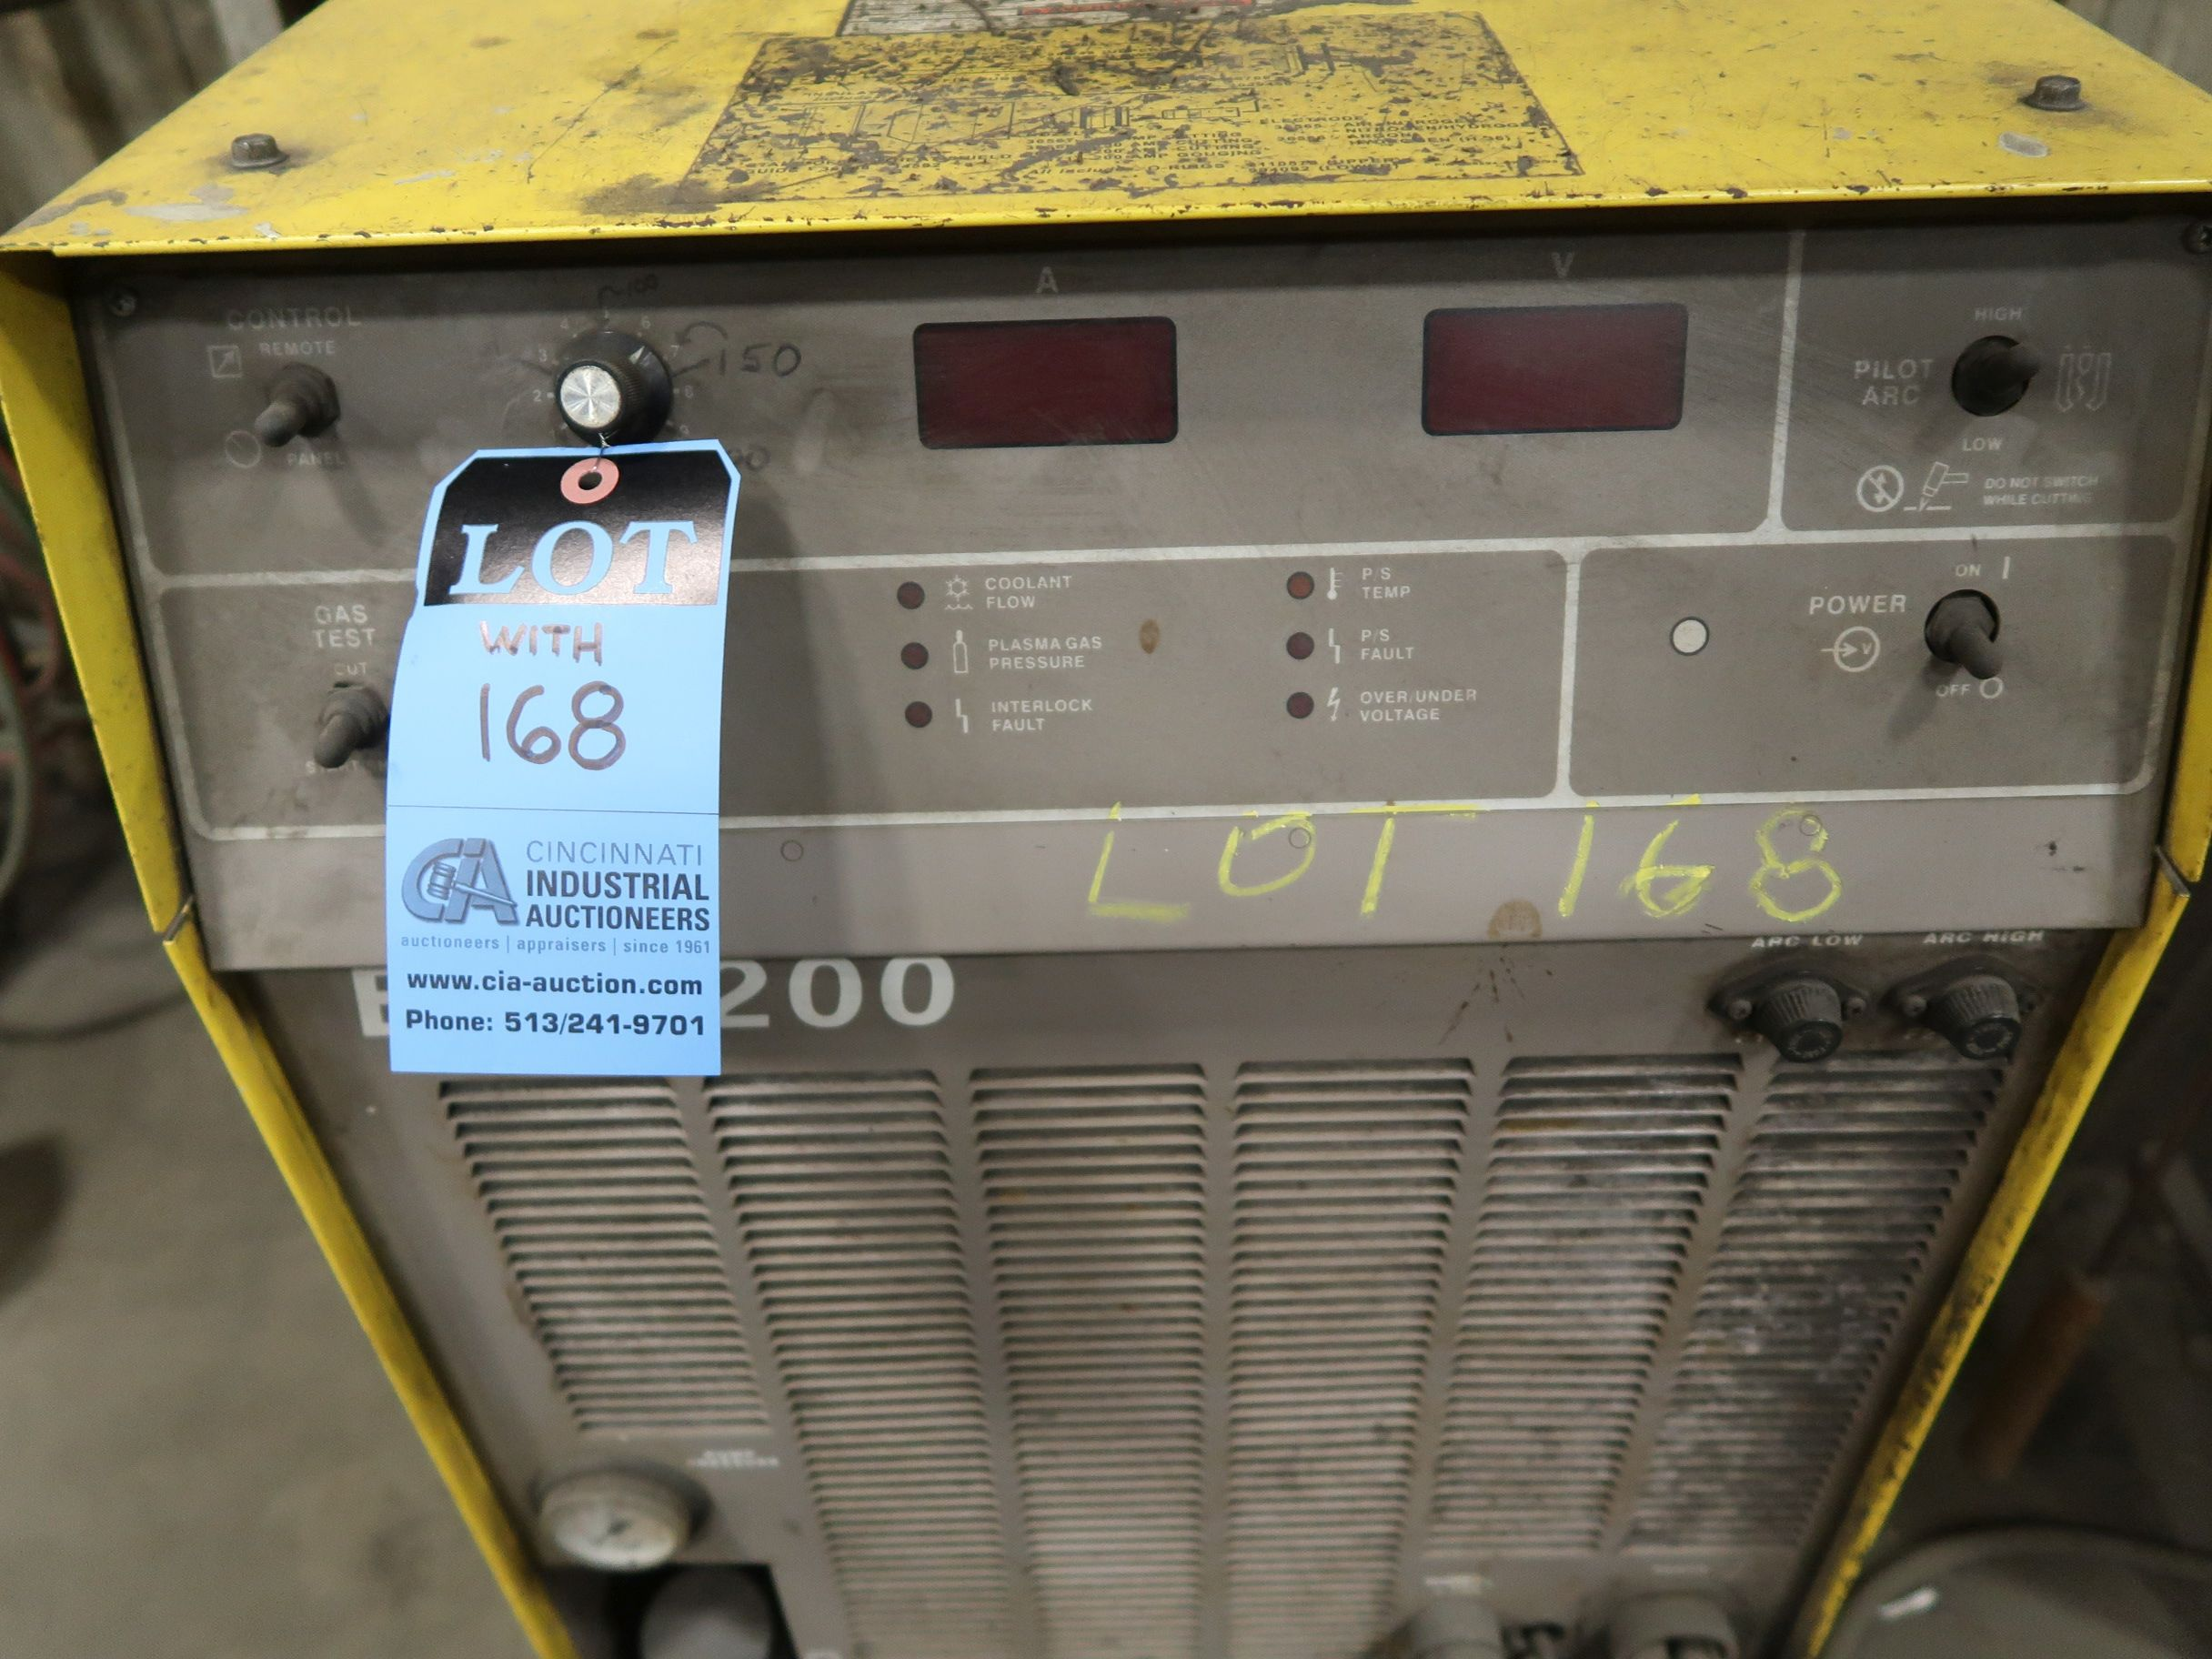 12' X 40' ESAB MODEL AVENGER 1-12 VISION PLASMA TABLE W/ BURNY 10 CONTROL; S/N 0560986386, UPDATED - Image 20 of 23